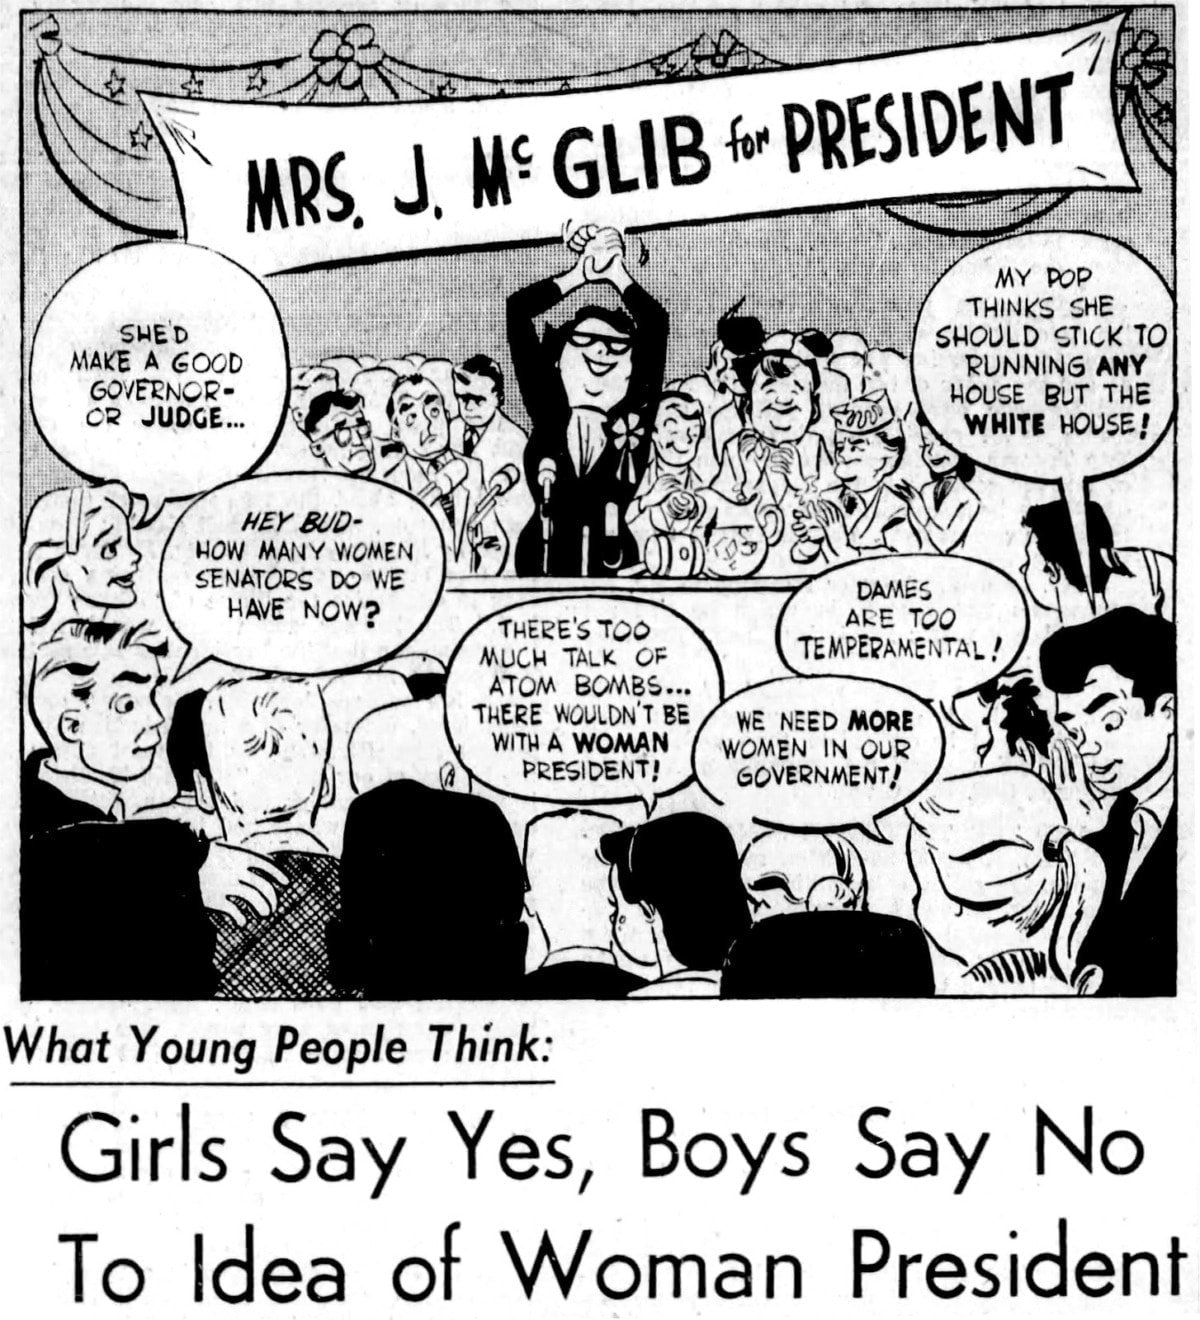 1956 Woman for President